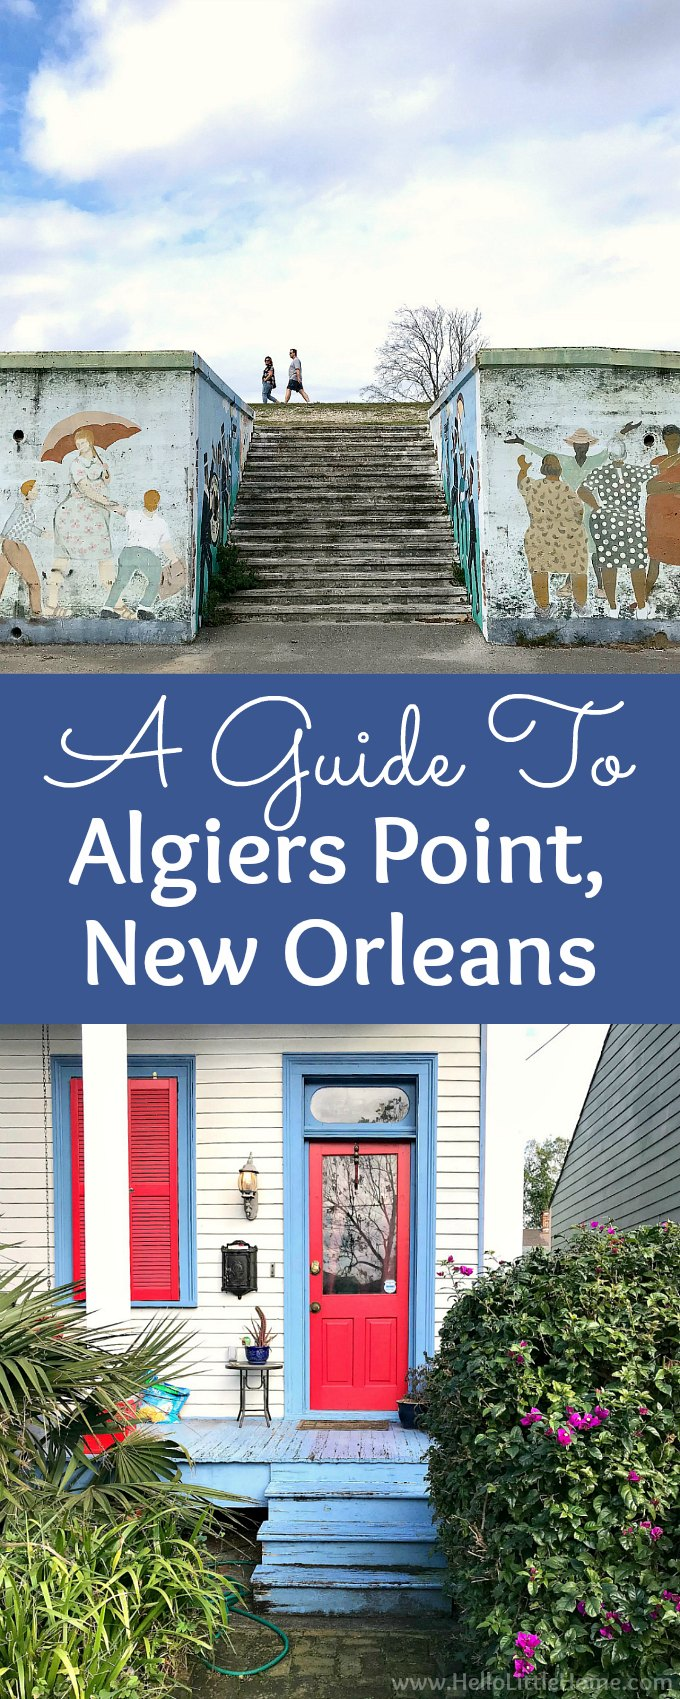 A guide to Algiers Point, New Orleans! Pretty Algiers, Louisiana is located across the Mississippi River from the French Quarter. This travel guide has all you need to know about Algiers, New Orleans, from taking the Algiers Point Ferry to things to do: walking on levee path, seeing the beautiful houses, enjoying a sunset and views of NOLA, or grabbing a bite to eat or drink! | Hello Little Home #algiers #algiersneworleans #algierspoint #onetimeinNOLA #neworleans #thingstodoinneworleans #nola